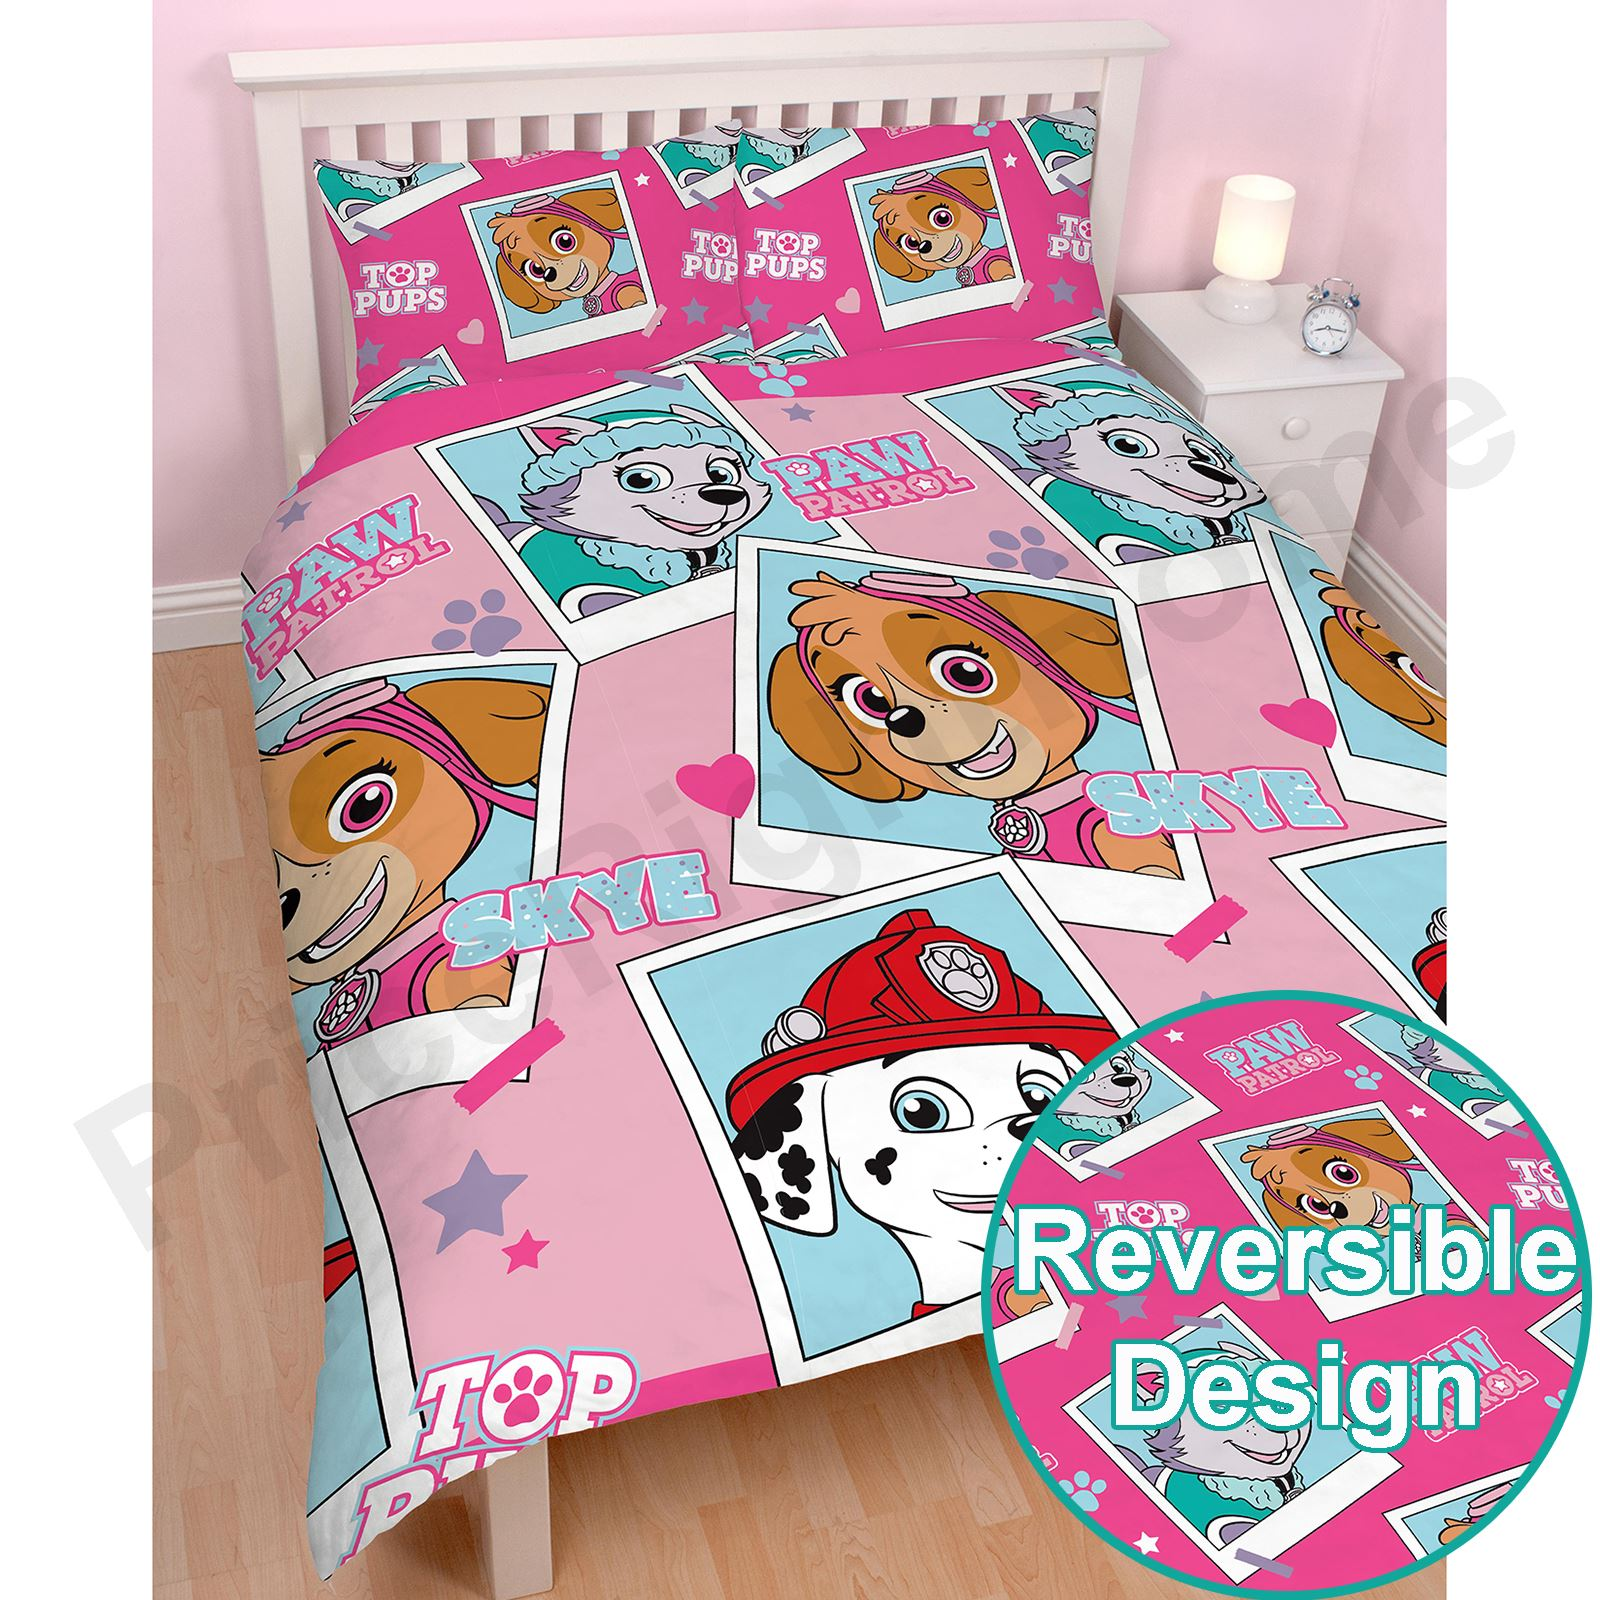 PAW PATROL OFFICIAL DUVET COVER SETS VARIOUS DESIGNS